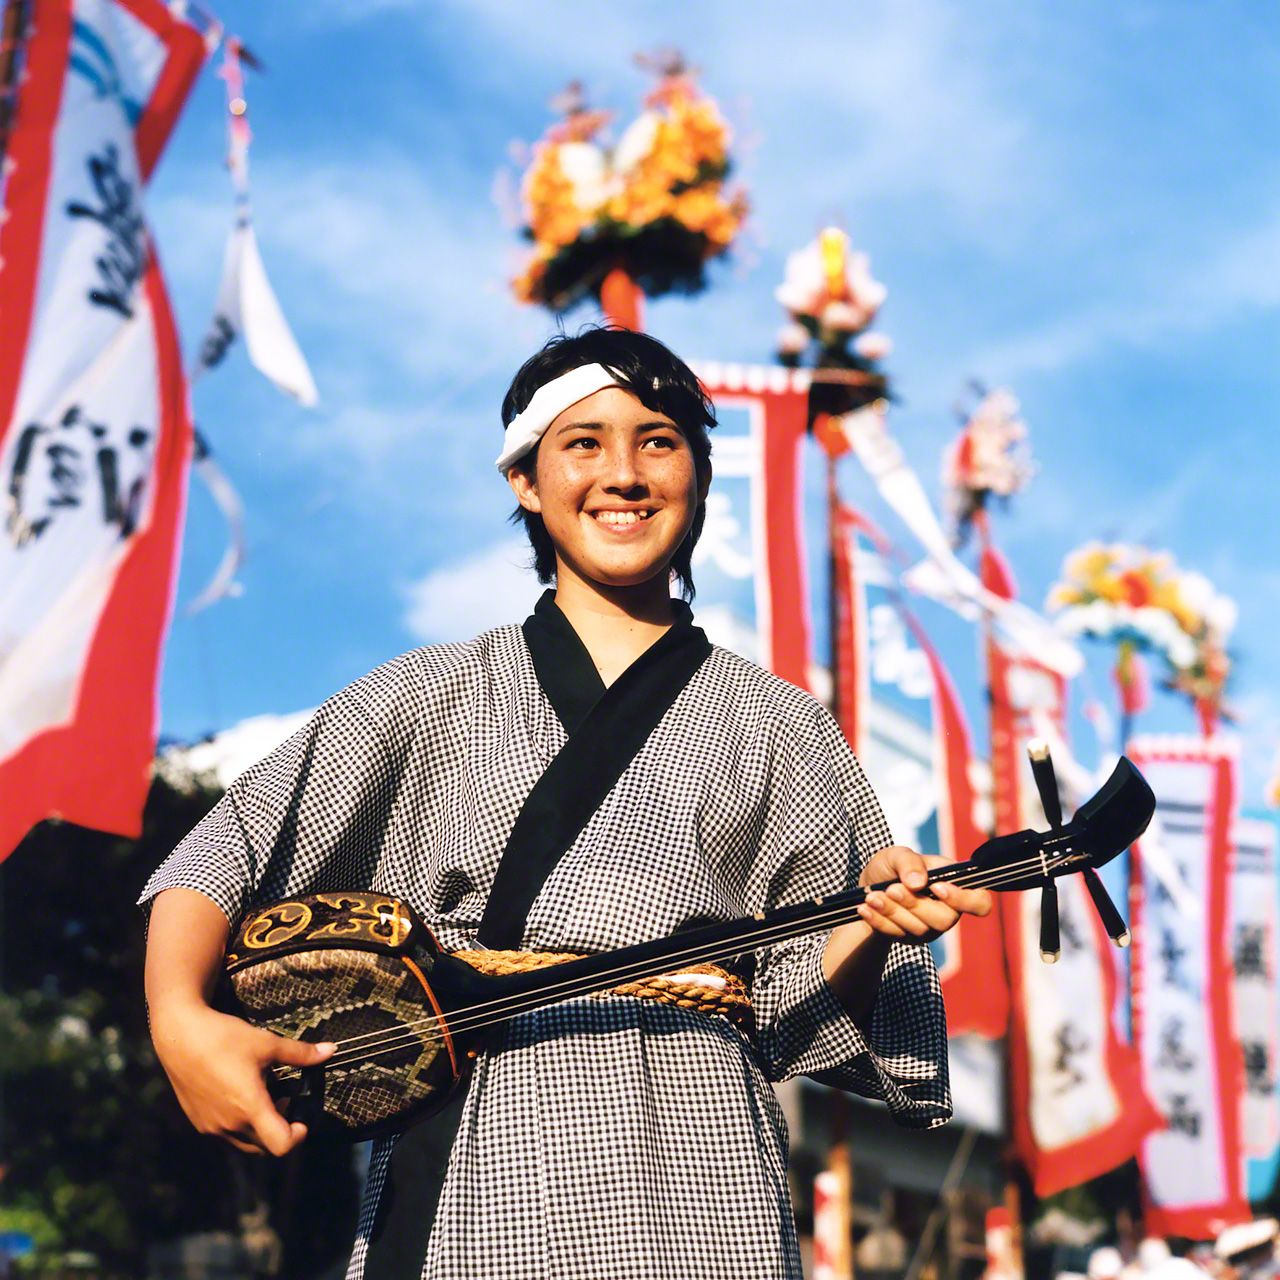 A high school girl holding a \sanshin\ at an Ishigakijima harvest festival.